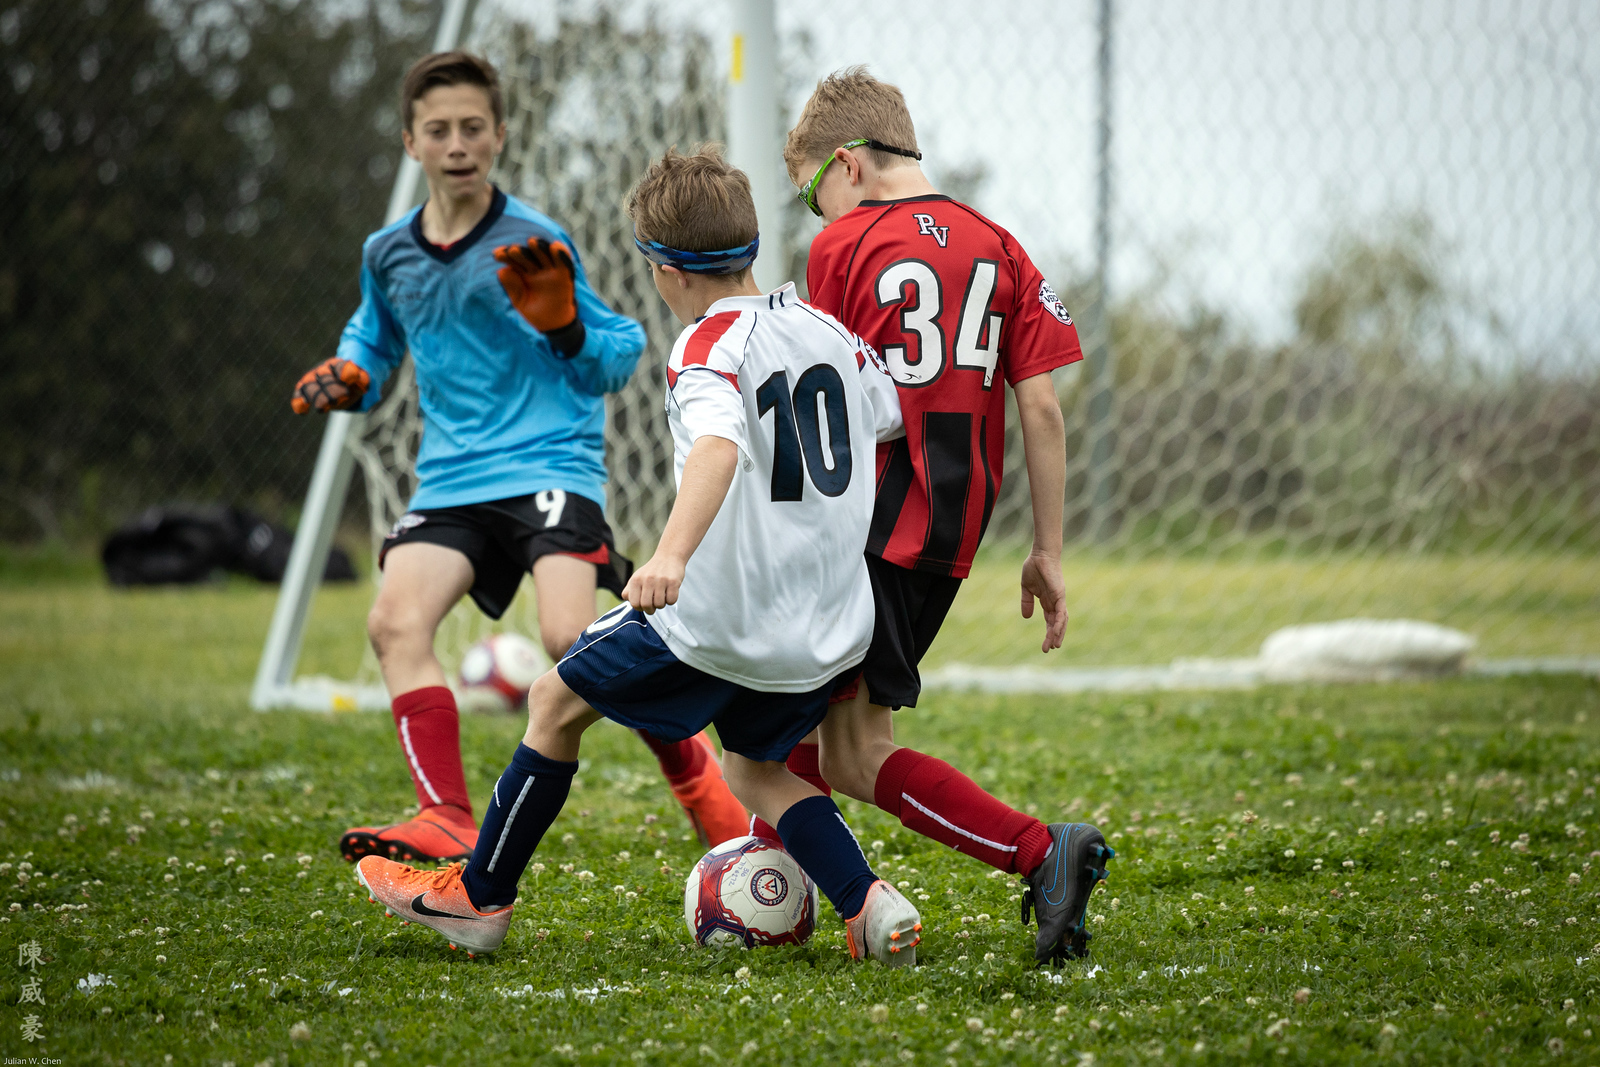 IMAGE: https://photos.smugmug.com/Photography/Sports/2020-AYSO-Renegades/i-6N3RkRJ/0/99403aa3/X3/20200223-Canon%20EOS-1D%20X%20Mark%20III-1DX30439-X3.jpg